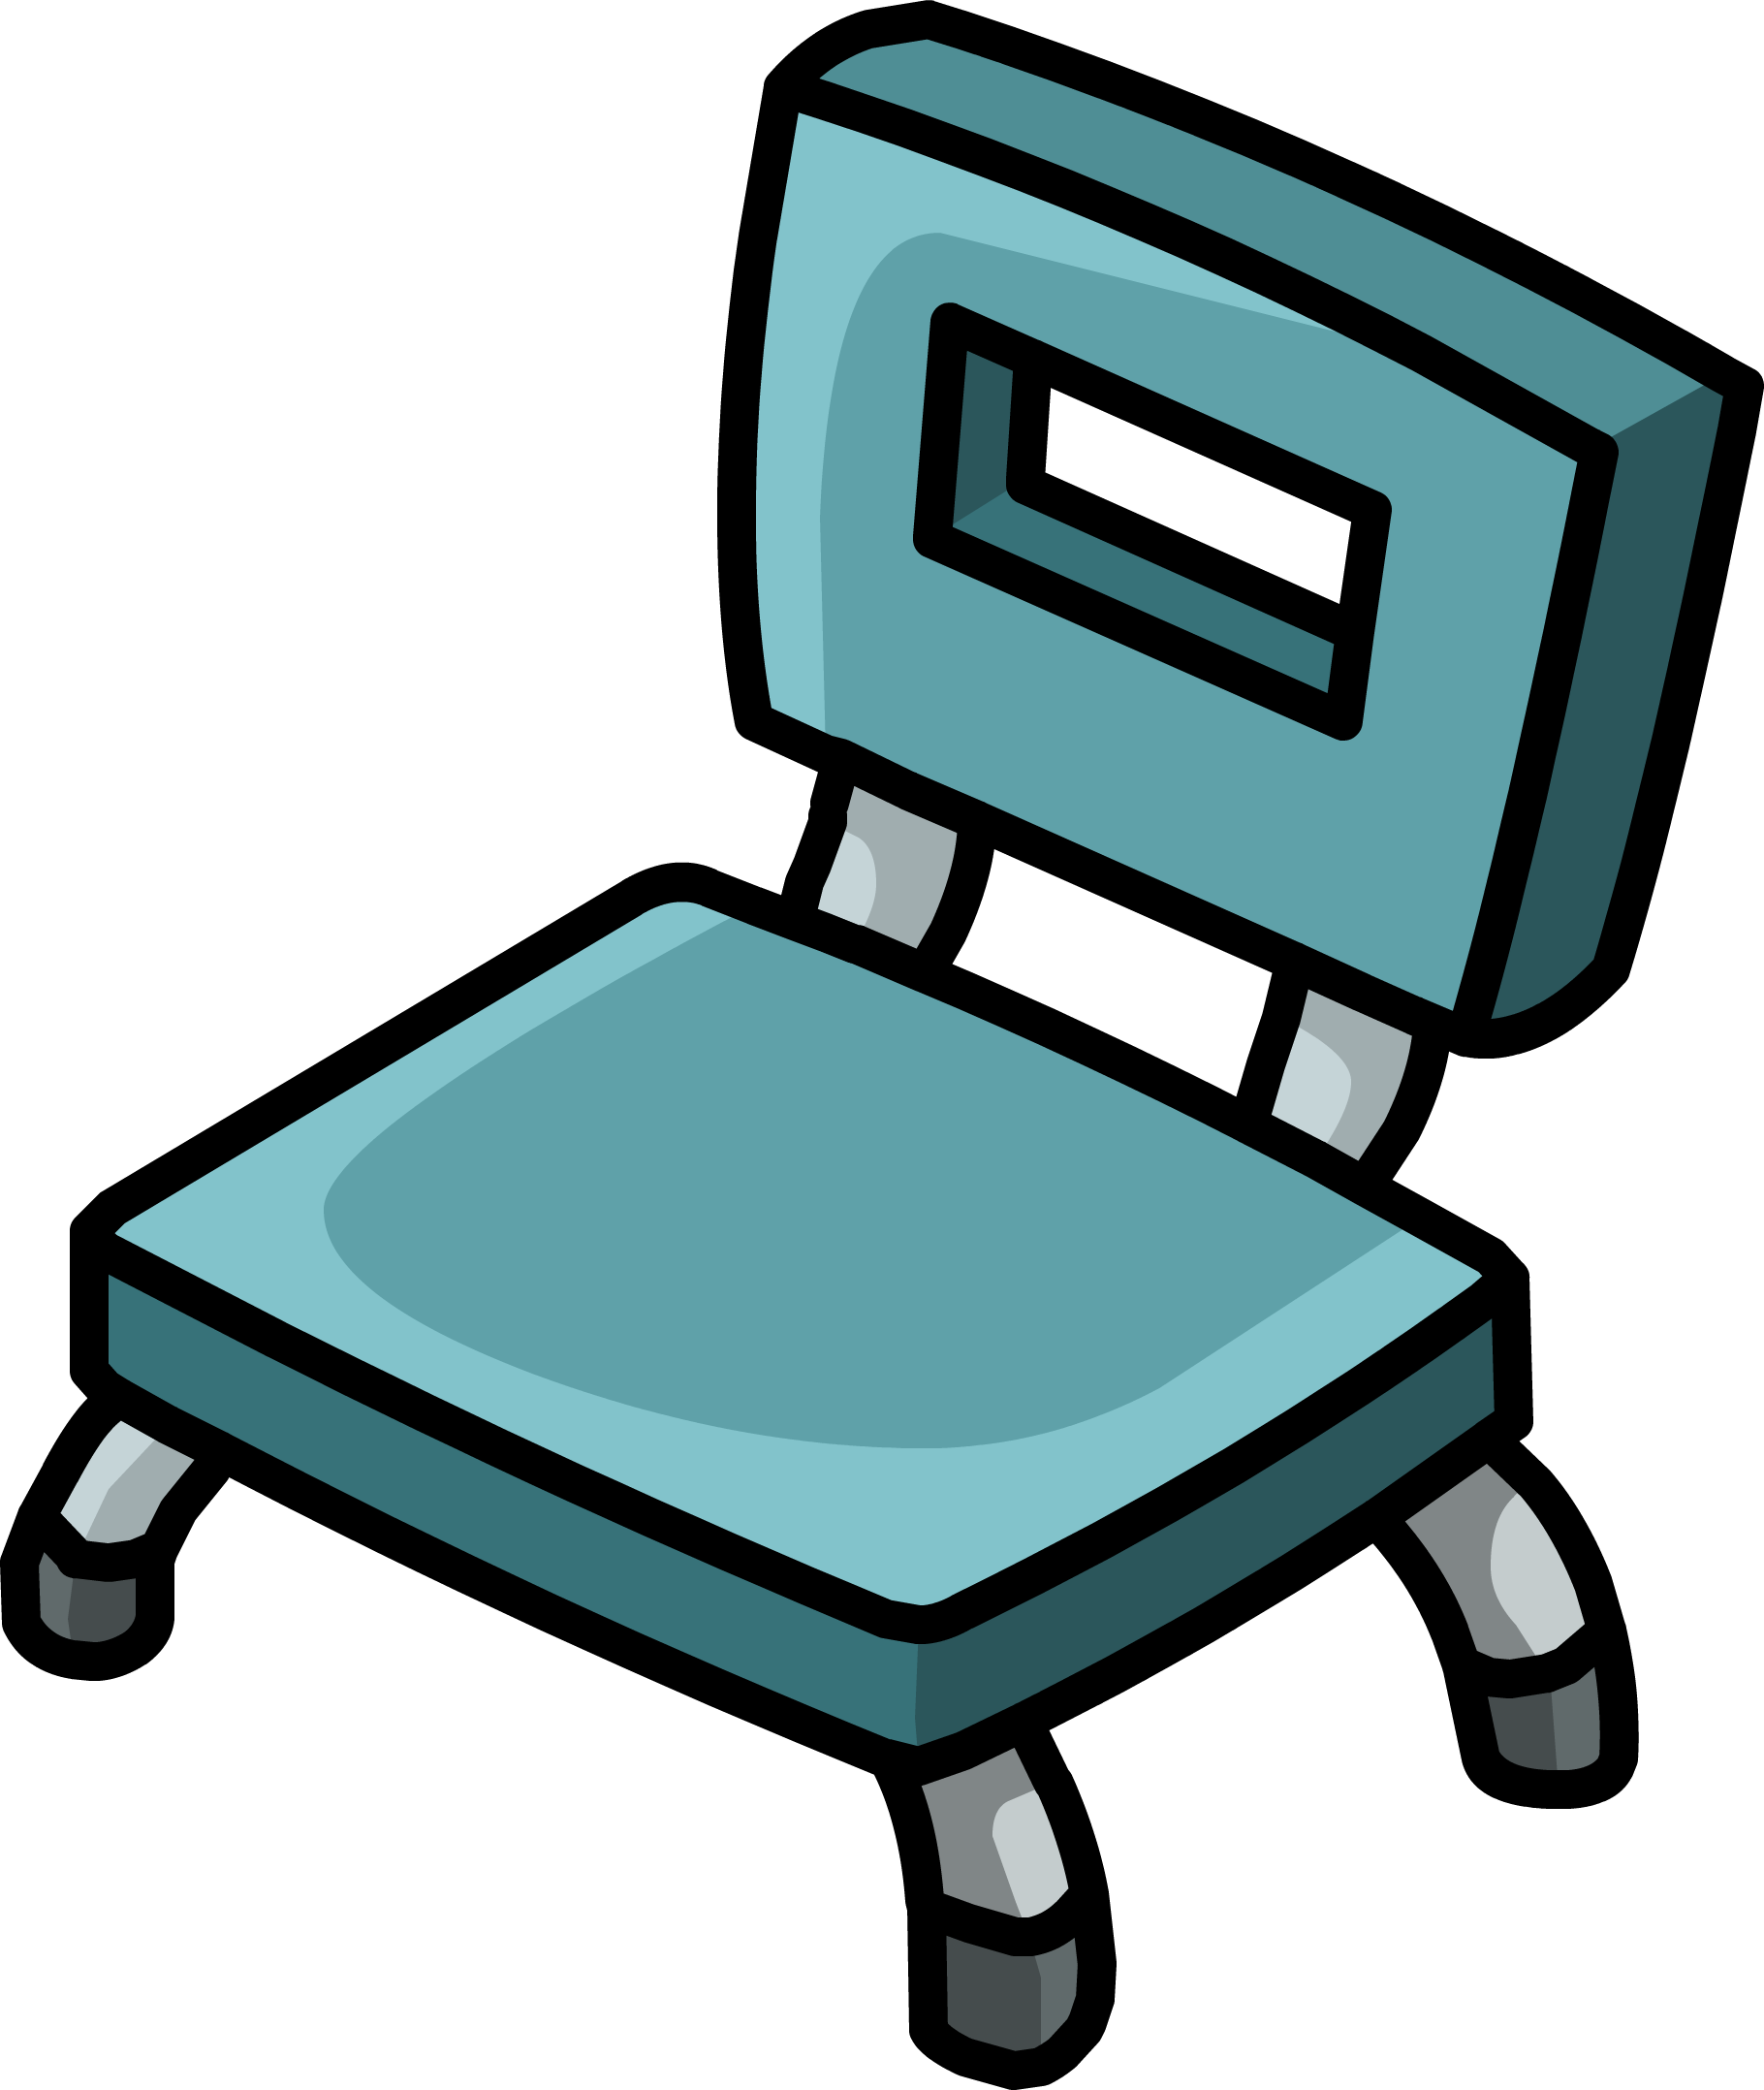 CPU Chair